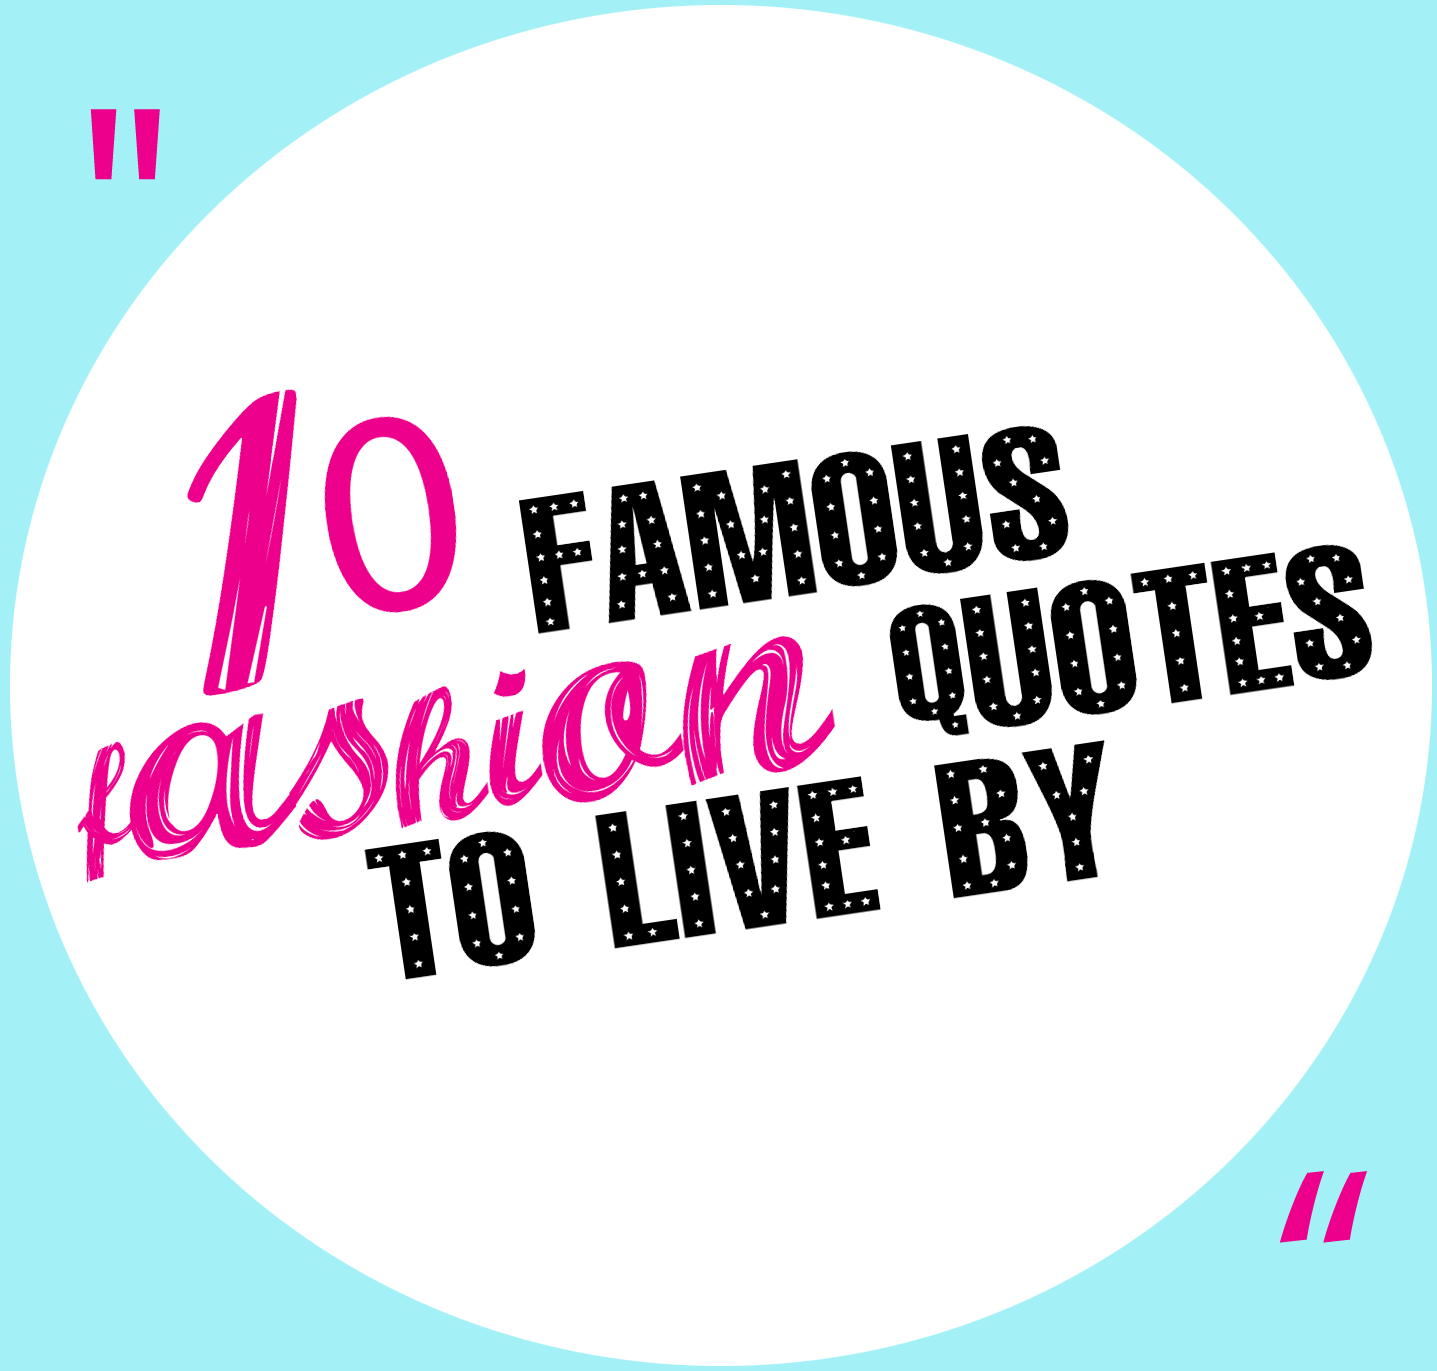 Best Quotes To Live By: Motivation For Monday: 10 Famous Fashion Quotes To Live By